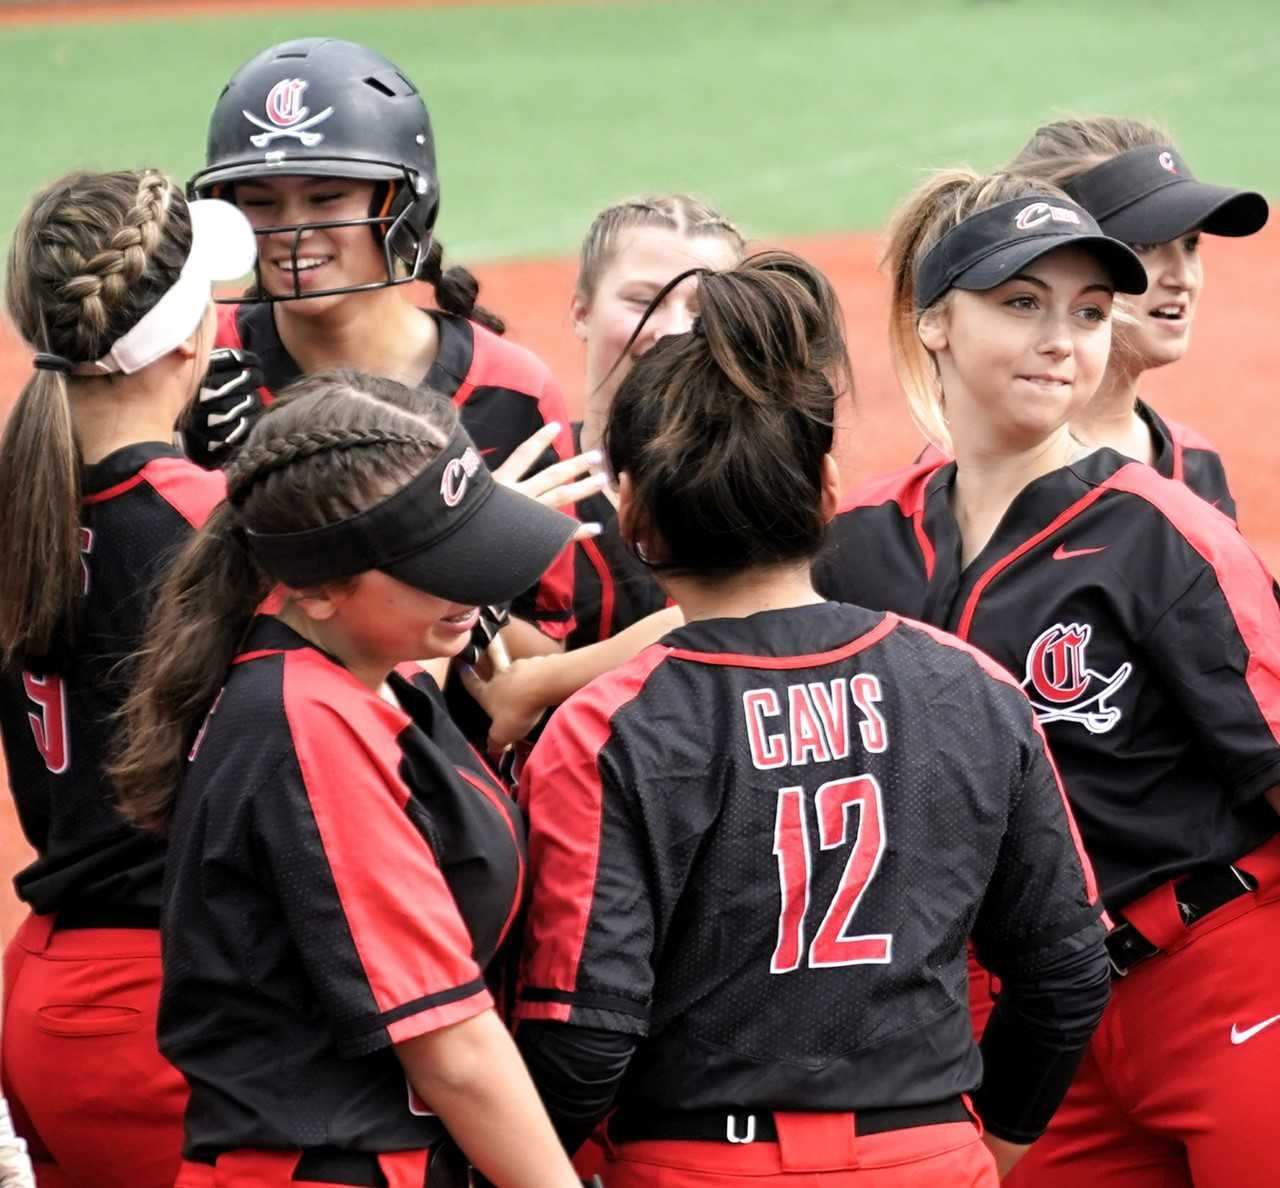 Clackamas players celebrate with Alyssa Daniell (helmet) after one of her two home runs. (Photo by Jon Olson)